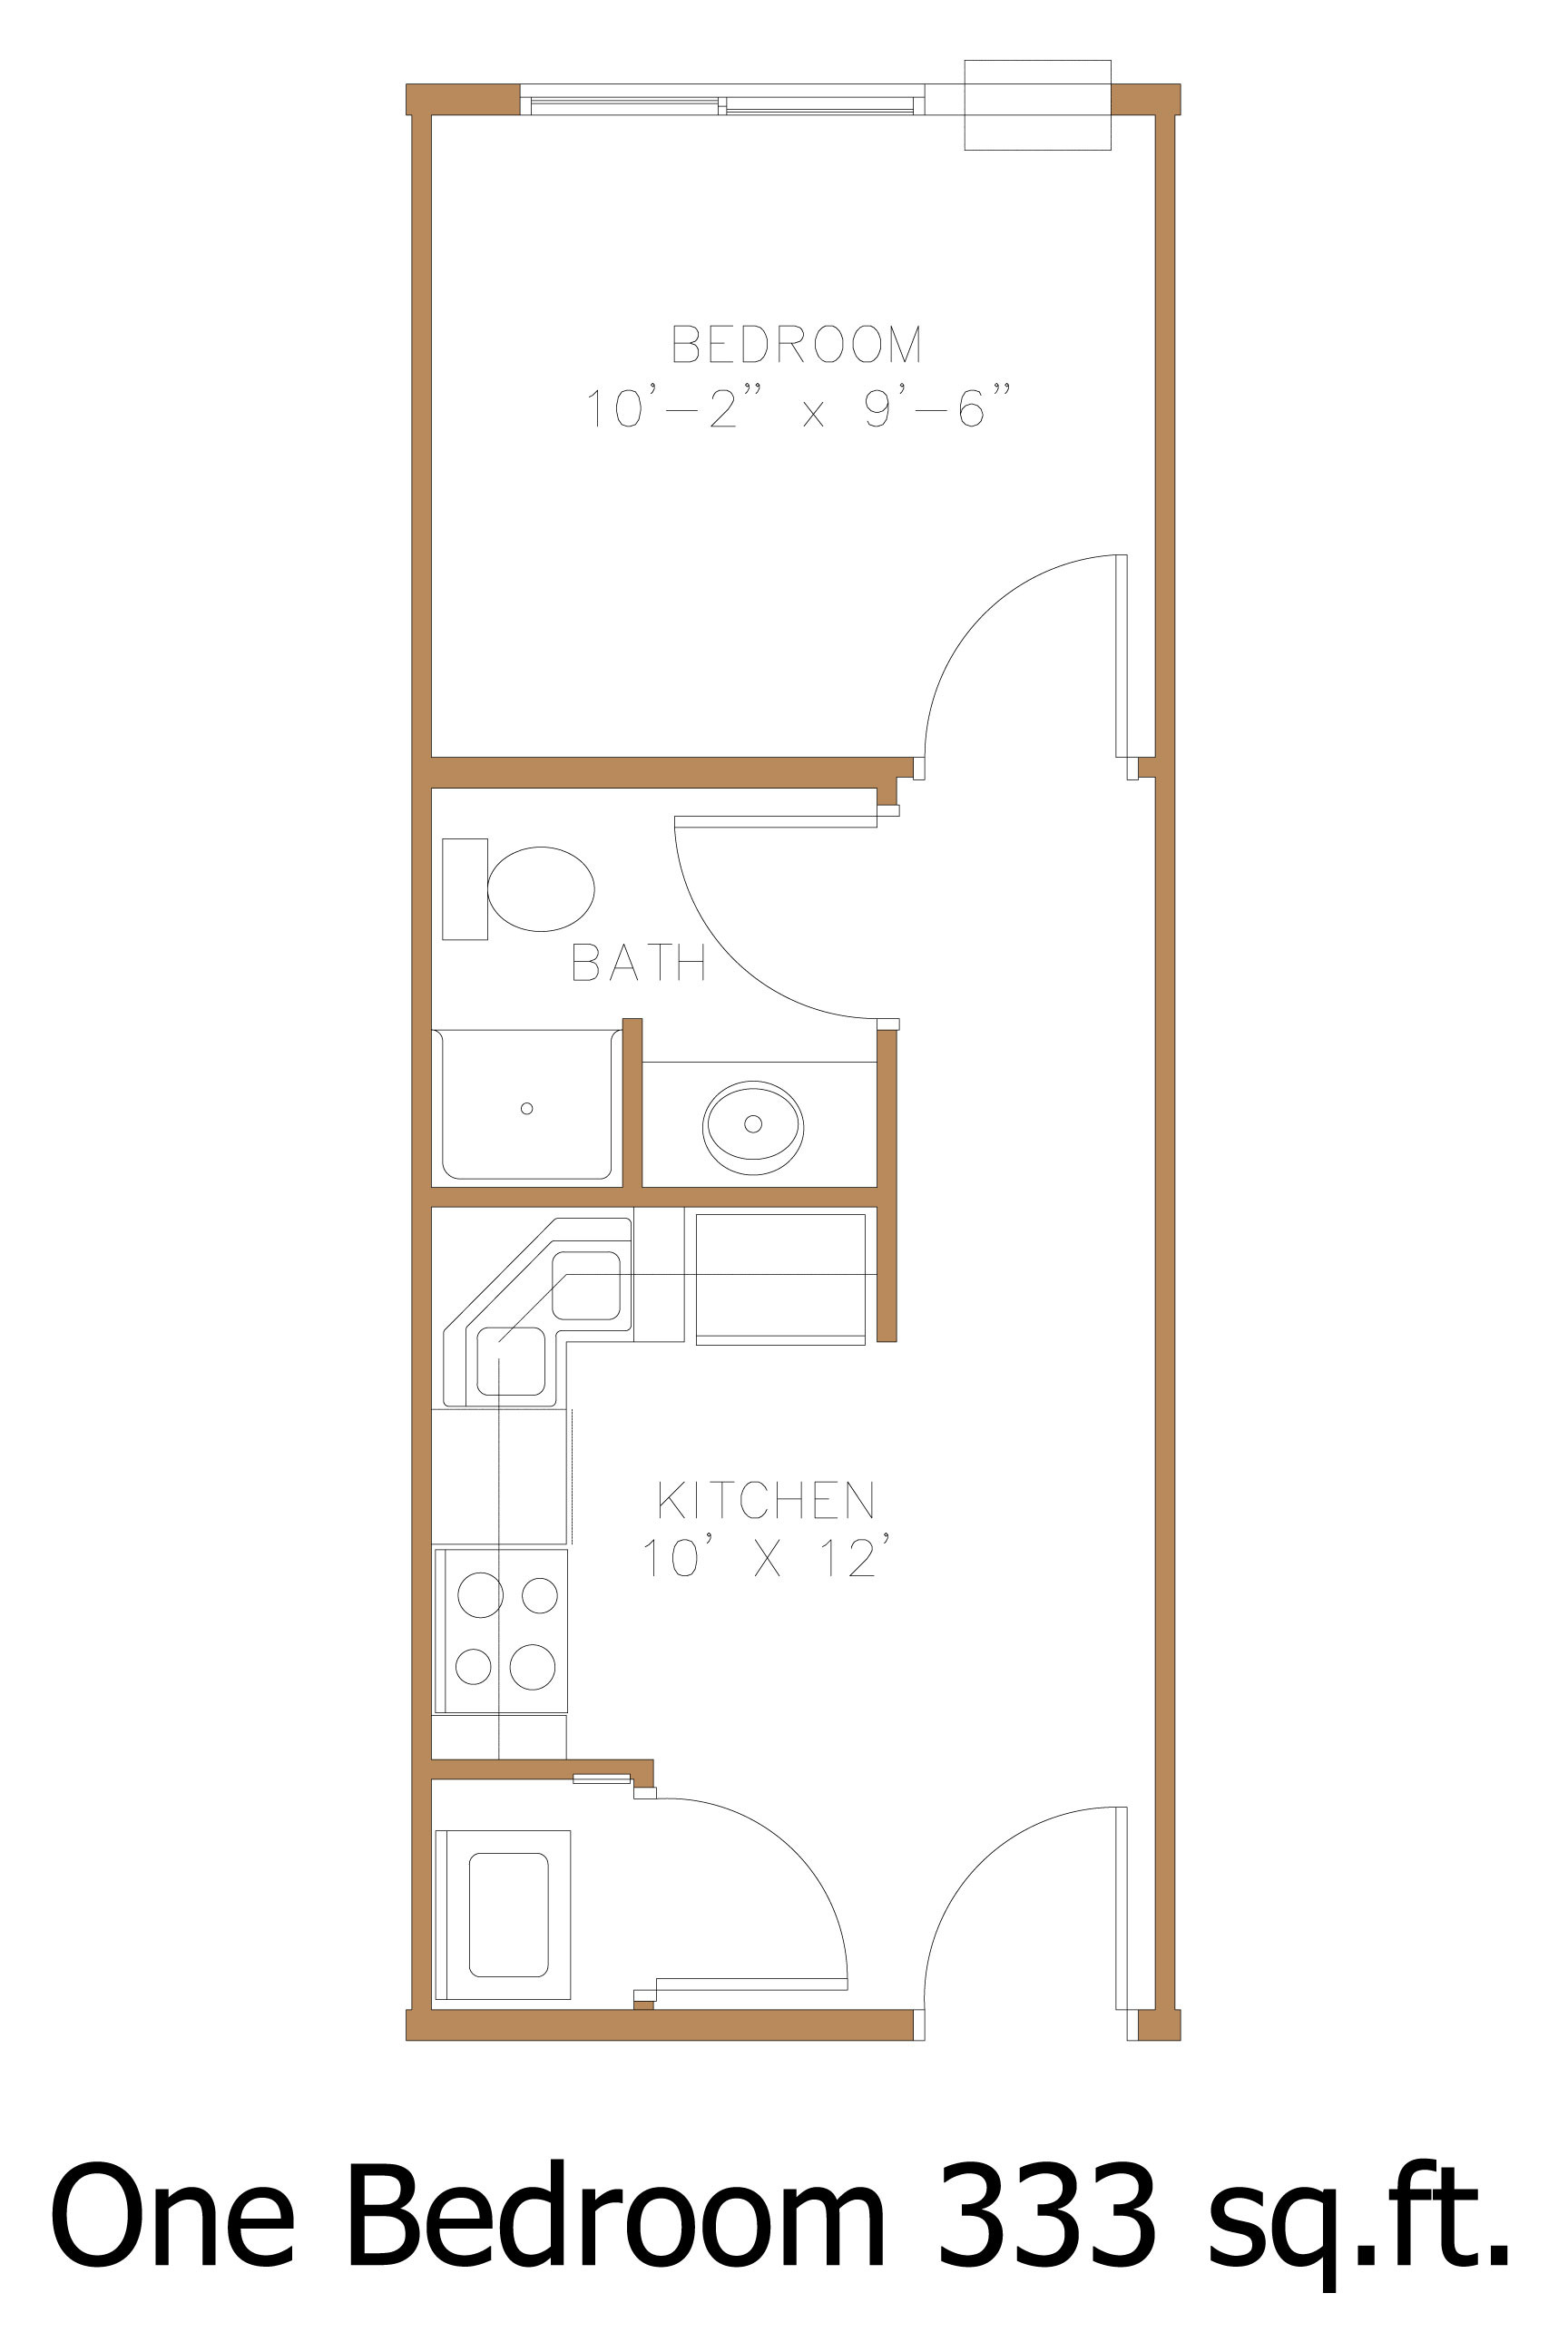 Hawley mn apartment floor plans great north properties llc - One room apartment design plan ...